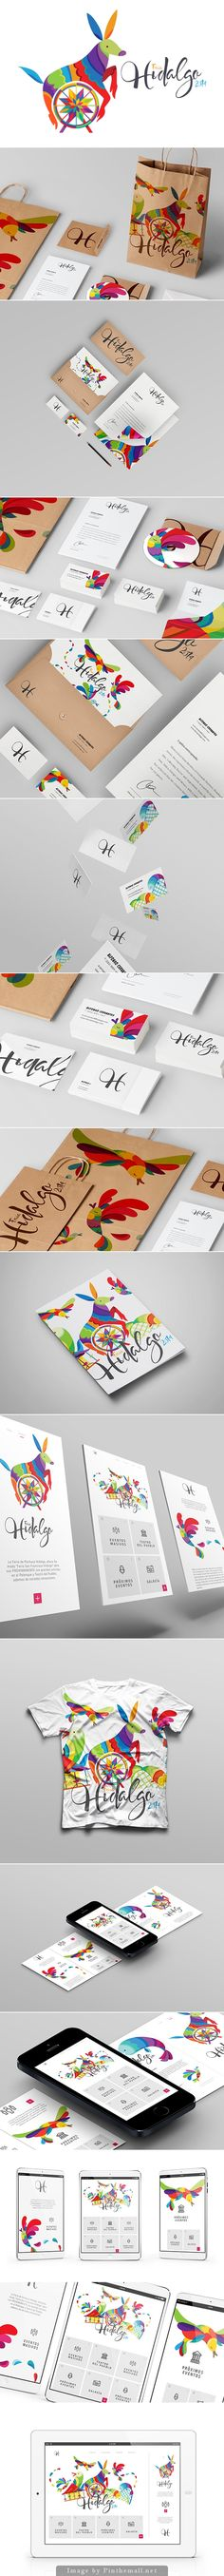 Although this design is fun and colourful, there seems to be to much going on with the different animals. I like the fact that the H and Hidalgo work as individual designs on the business cards.